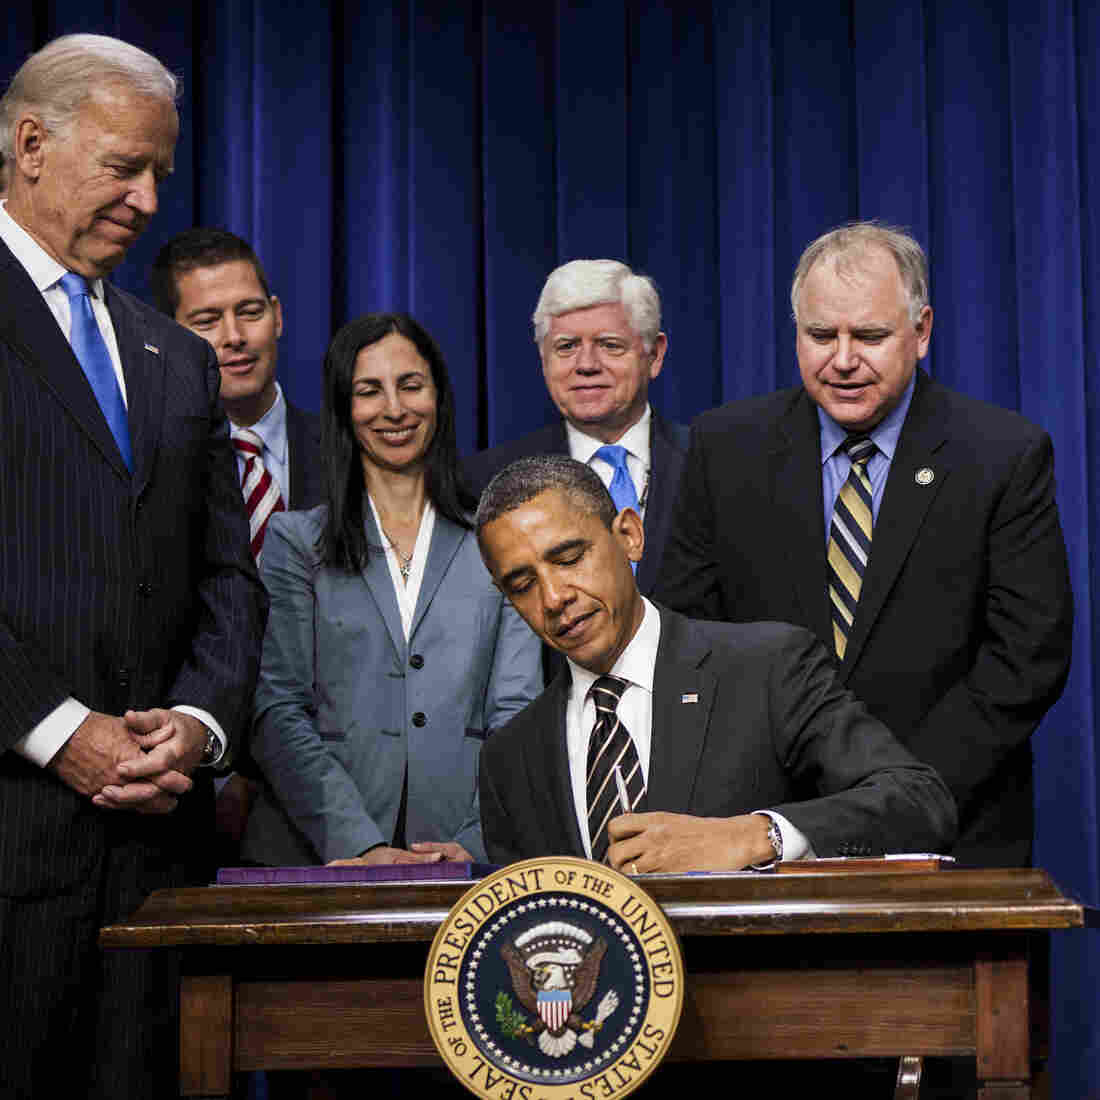 Vice President Biden and members of Congress watch as President Obama signs the STOCK Act on April 4, 2012. A year later, Congress moved to undo large portions of the law without fanfare.